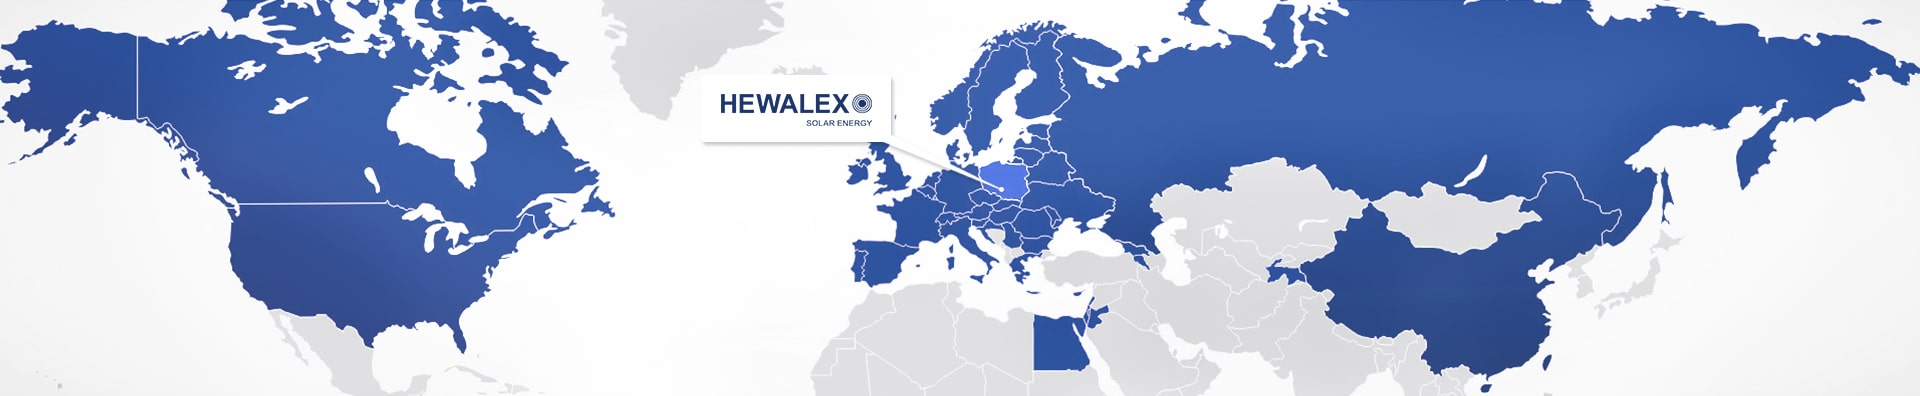 Hewalex export map